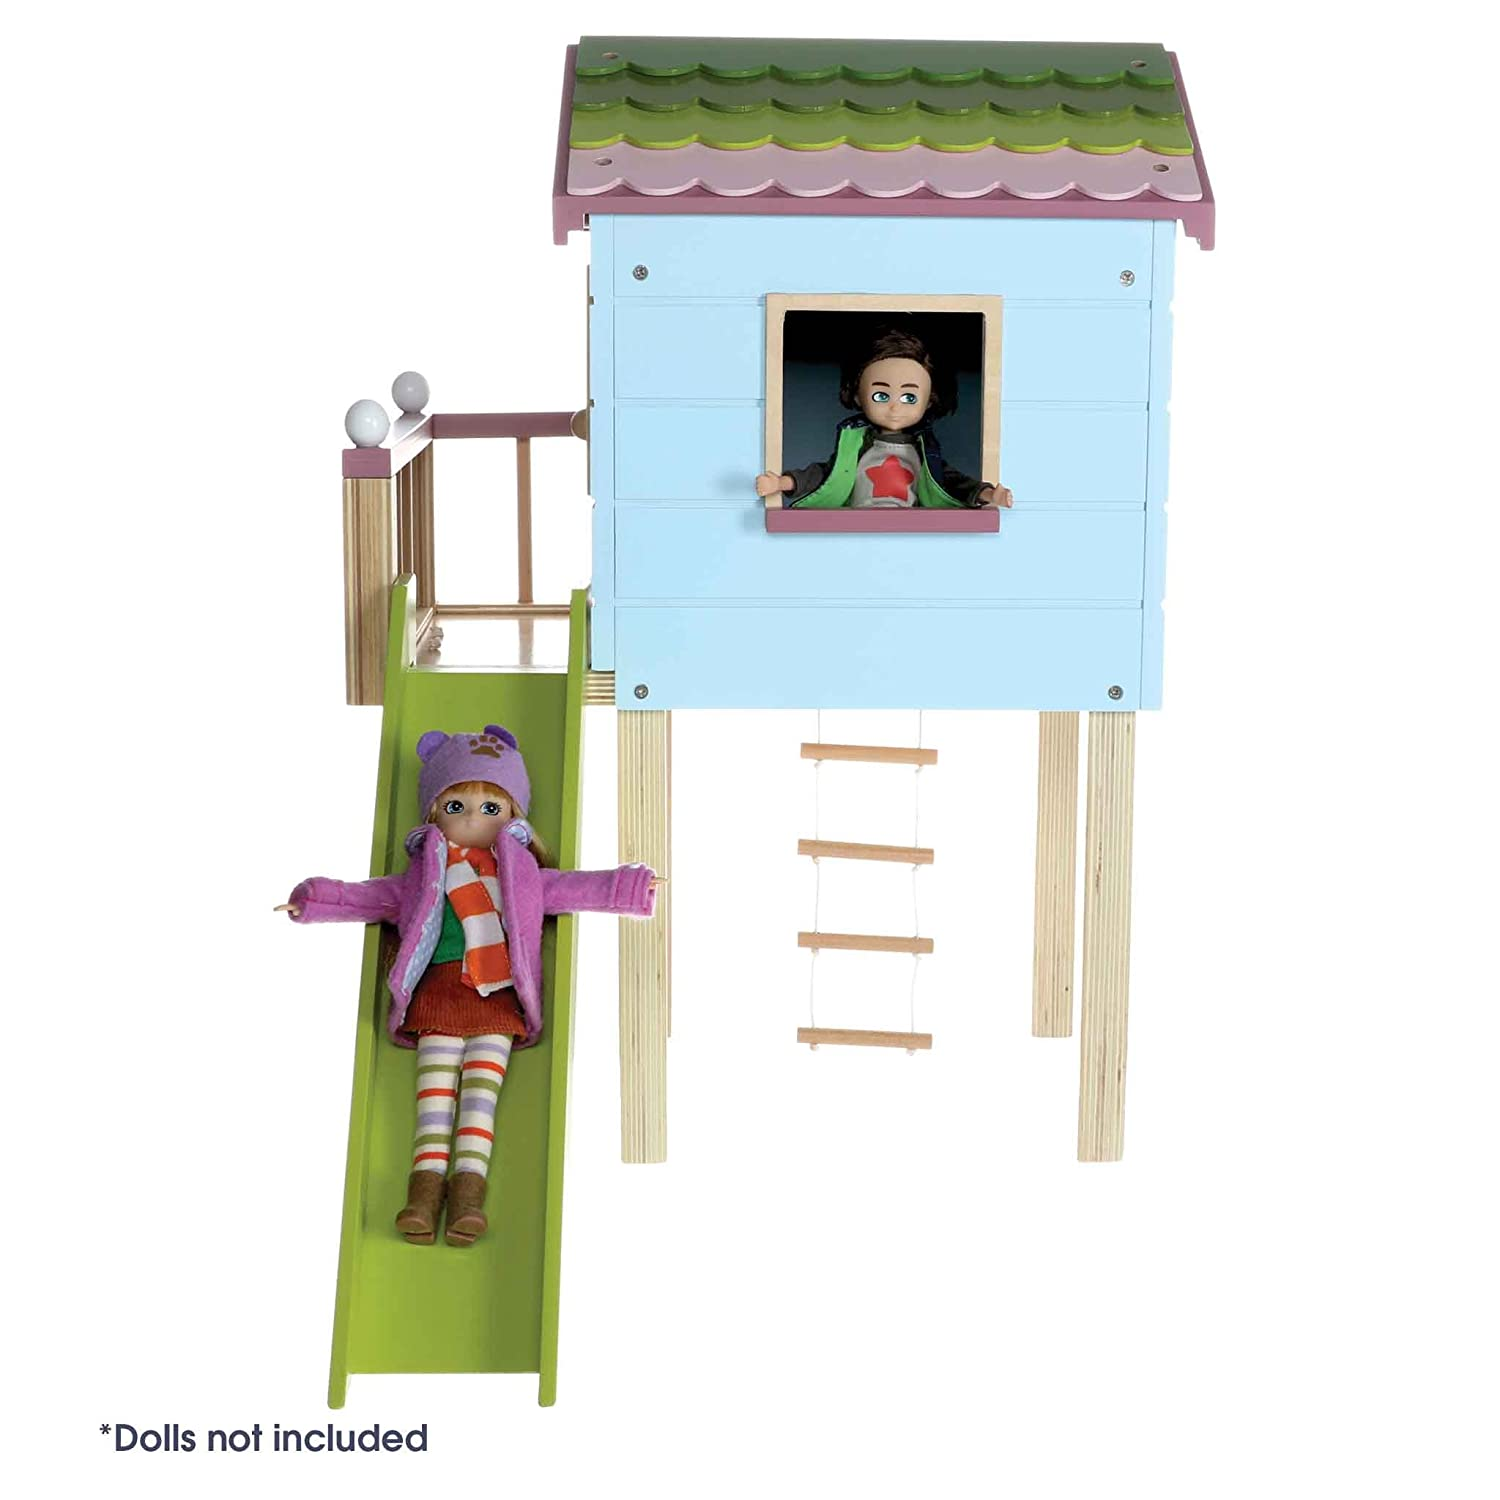 Playhouse Made with Wood and Child Friendly Colours to Collect Dolls Lottie Wooden Dollhouse Treehouse Best Fun Gift for empowering Kids Ages 3 /& up LT089